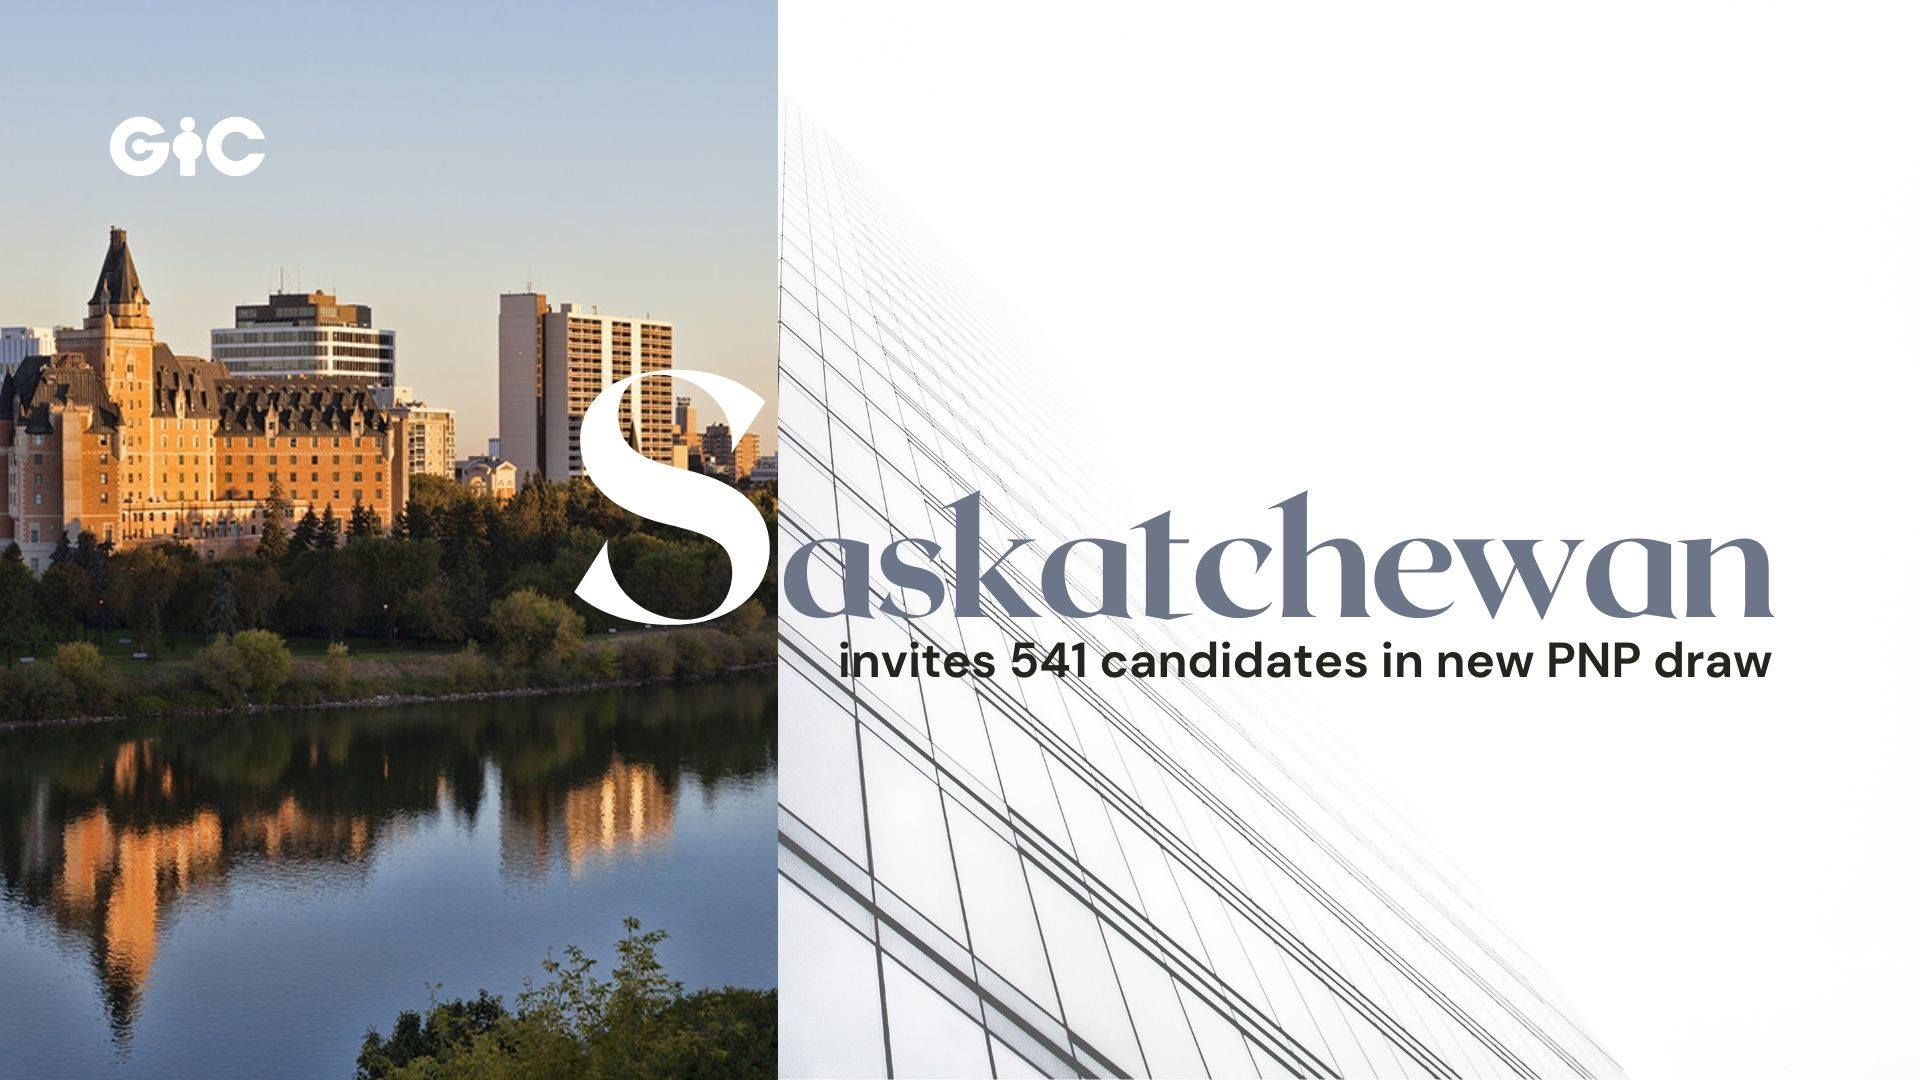 Saskatchewan invites 541 candidates in new PNP draw